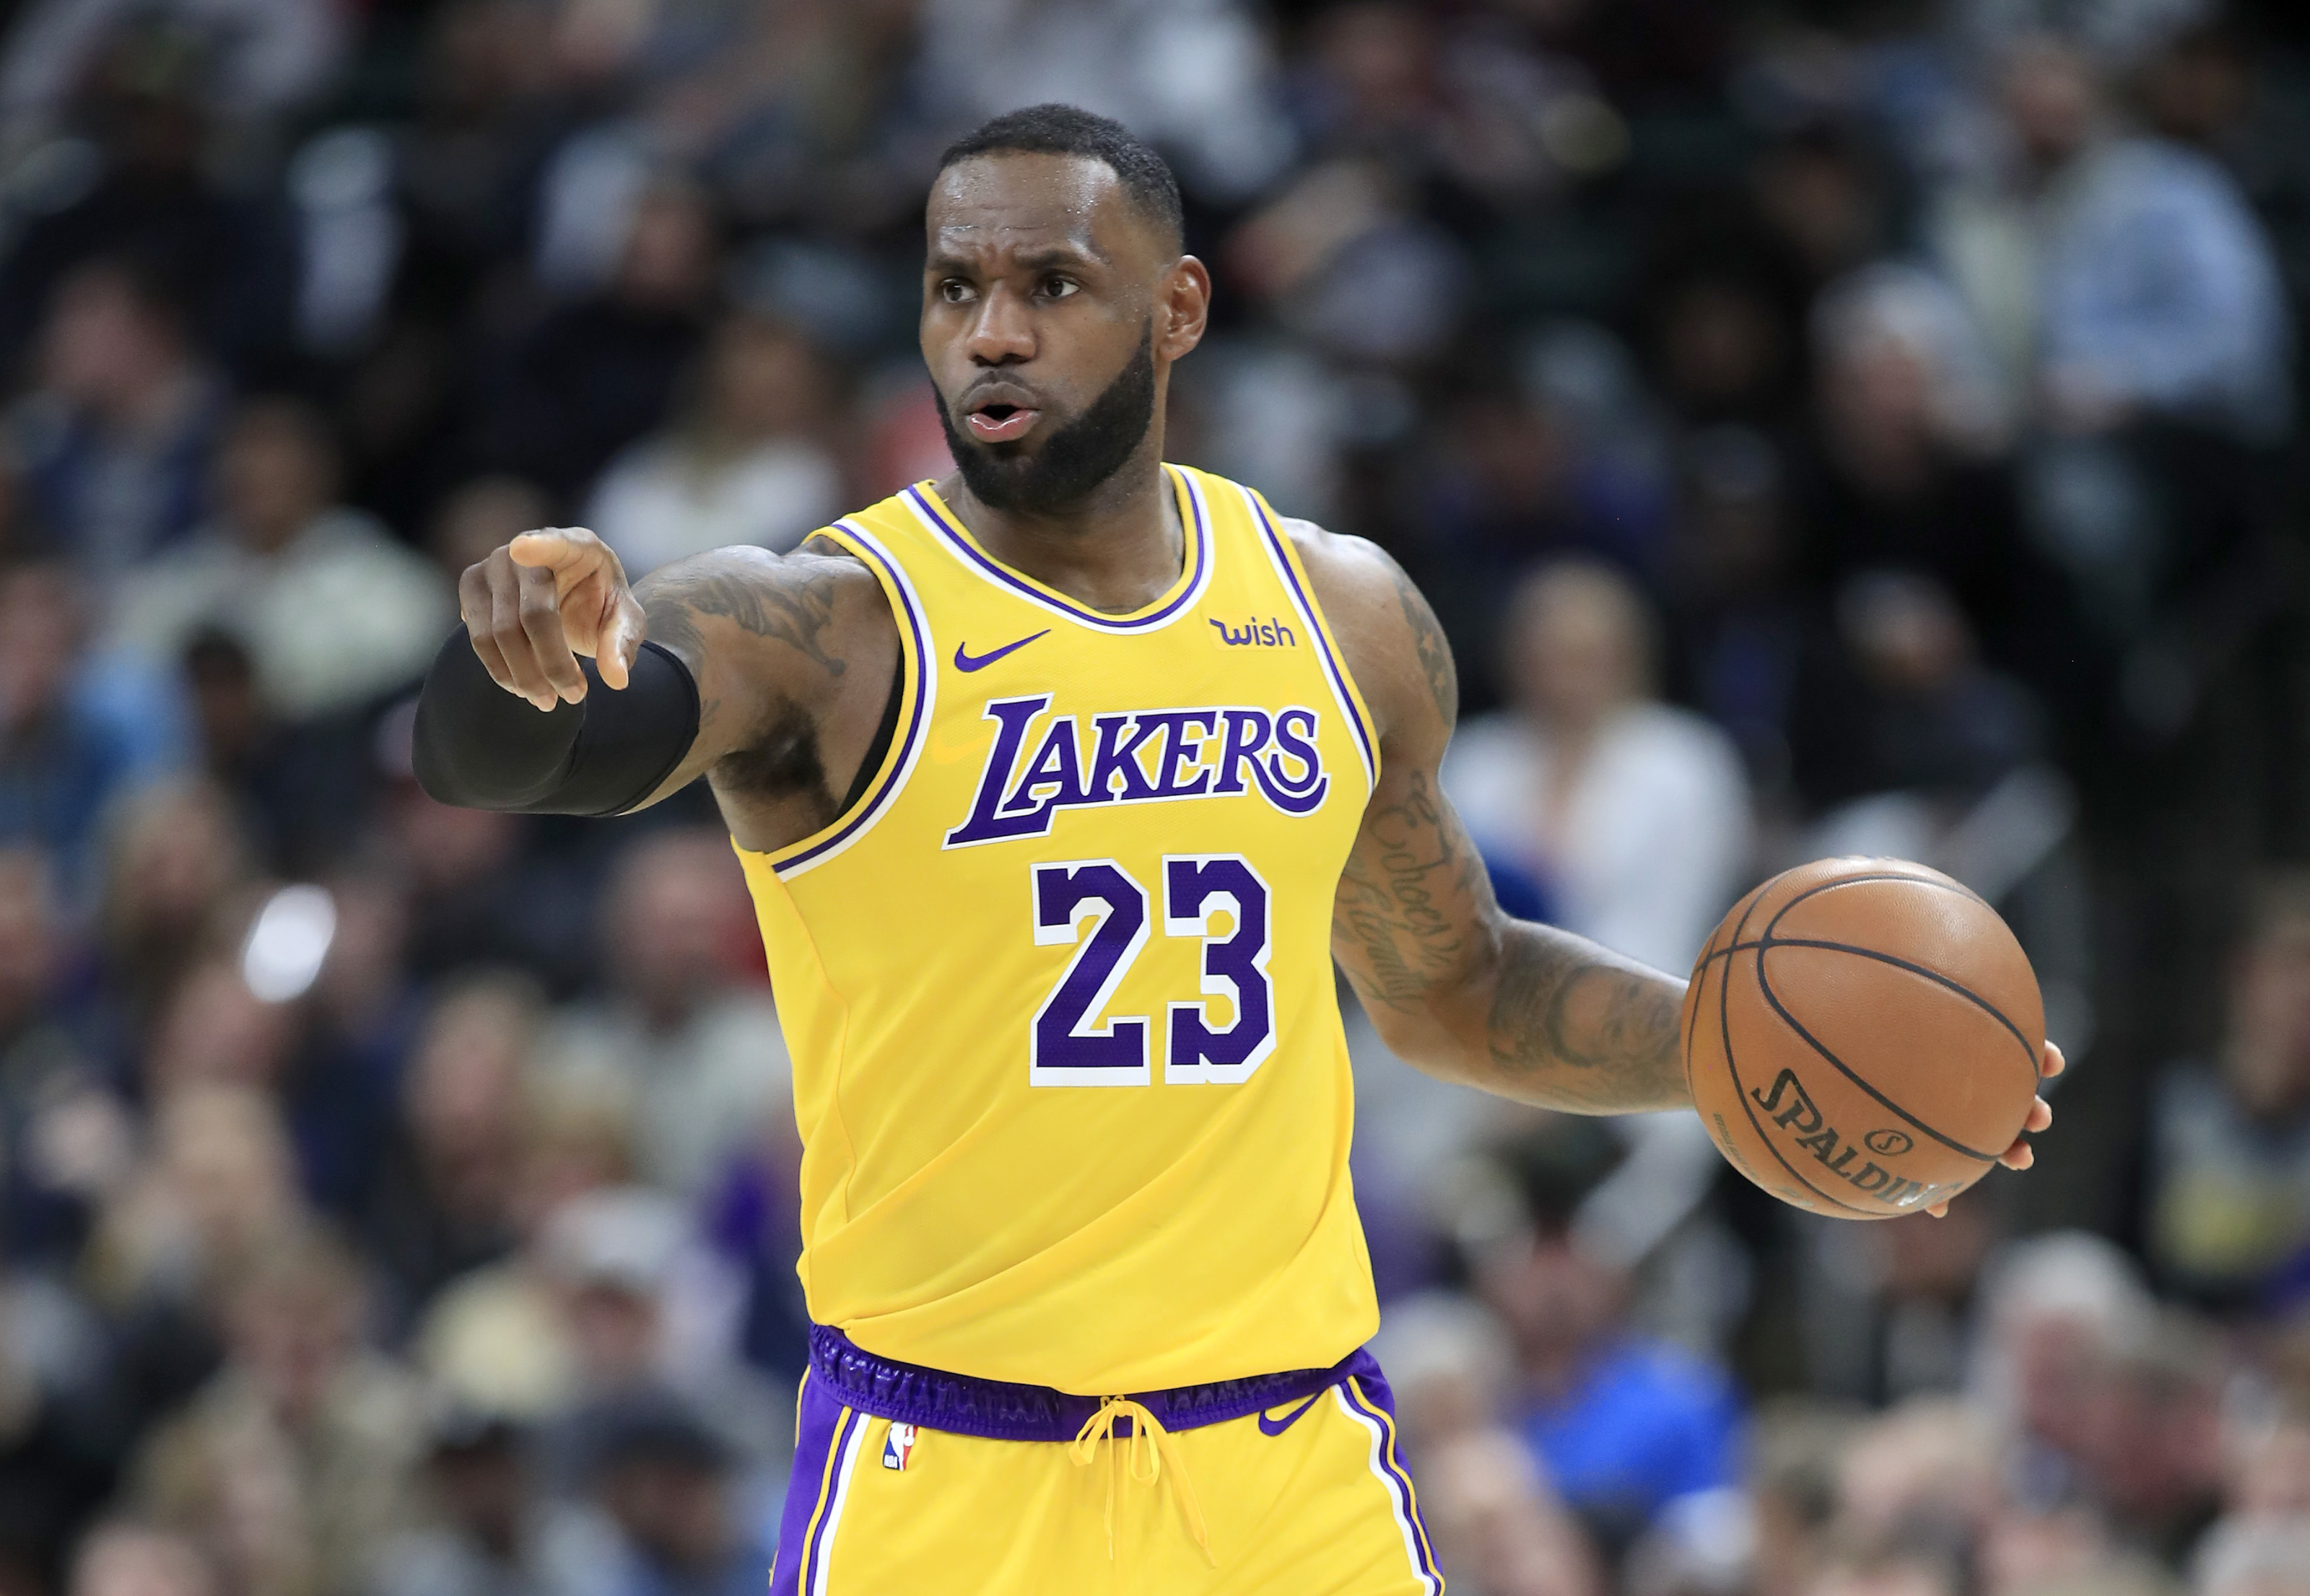 LeBron James is having a sensational season, but will he deliver a title to LA?